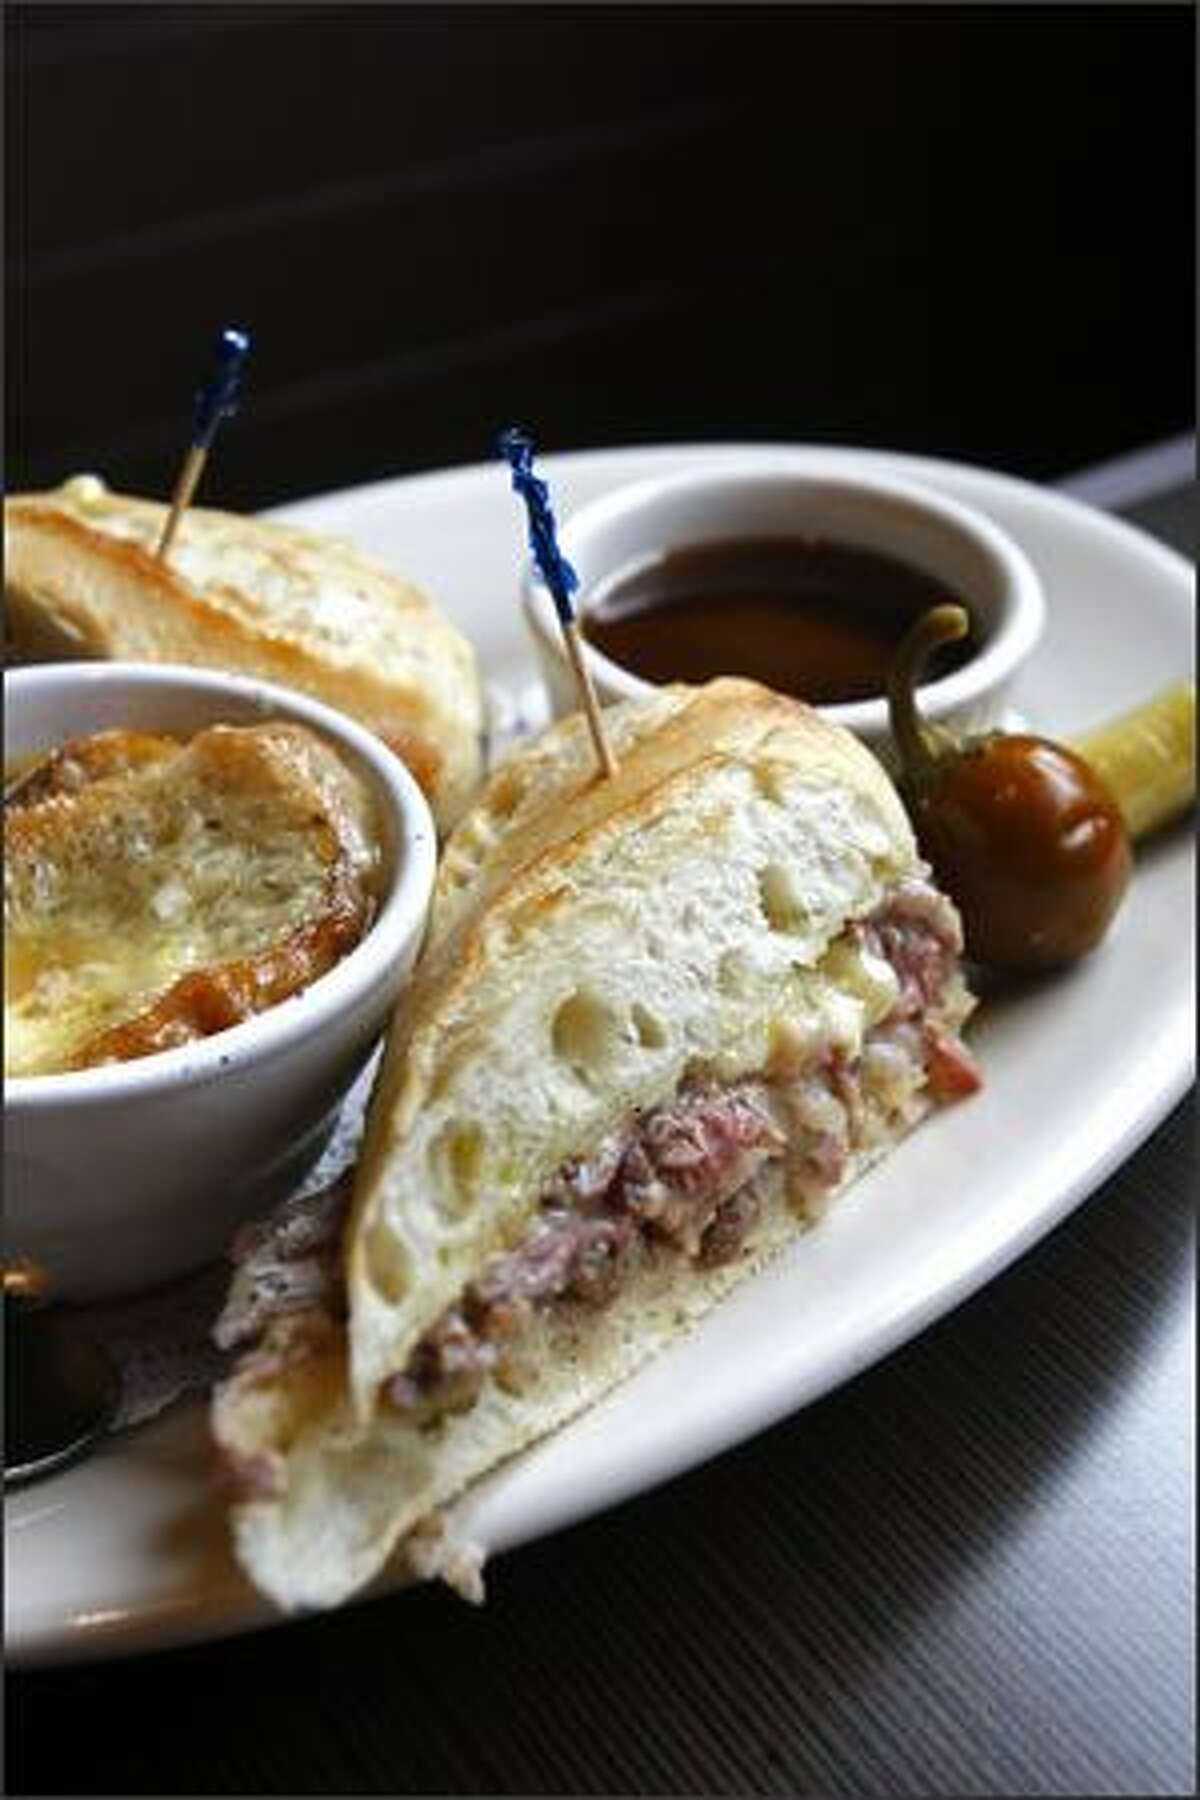 Vive la France! A French dip sandwich and a cup of French onion soup from the menu at the Serendipity Cafe. Sandwiches ($7-$13) come with a side of chips, slaw or pasta salad.